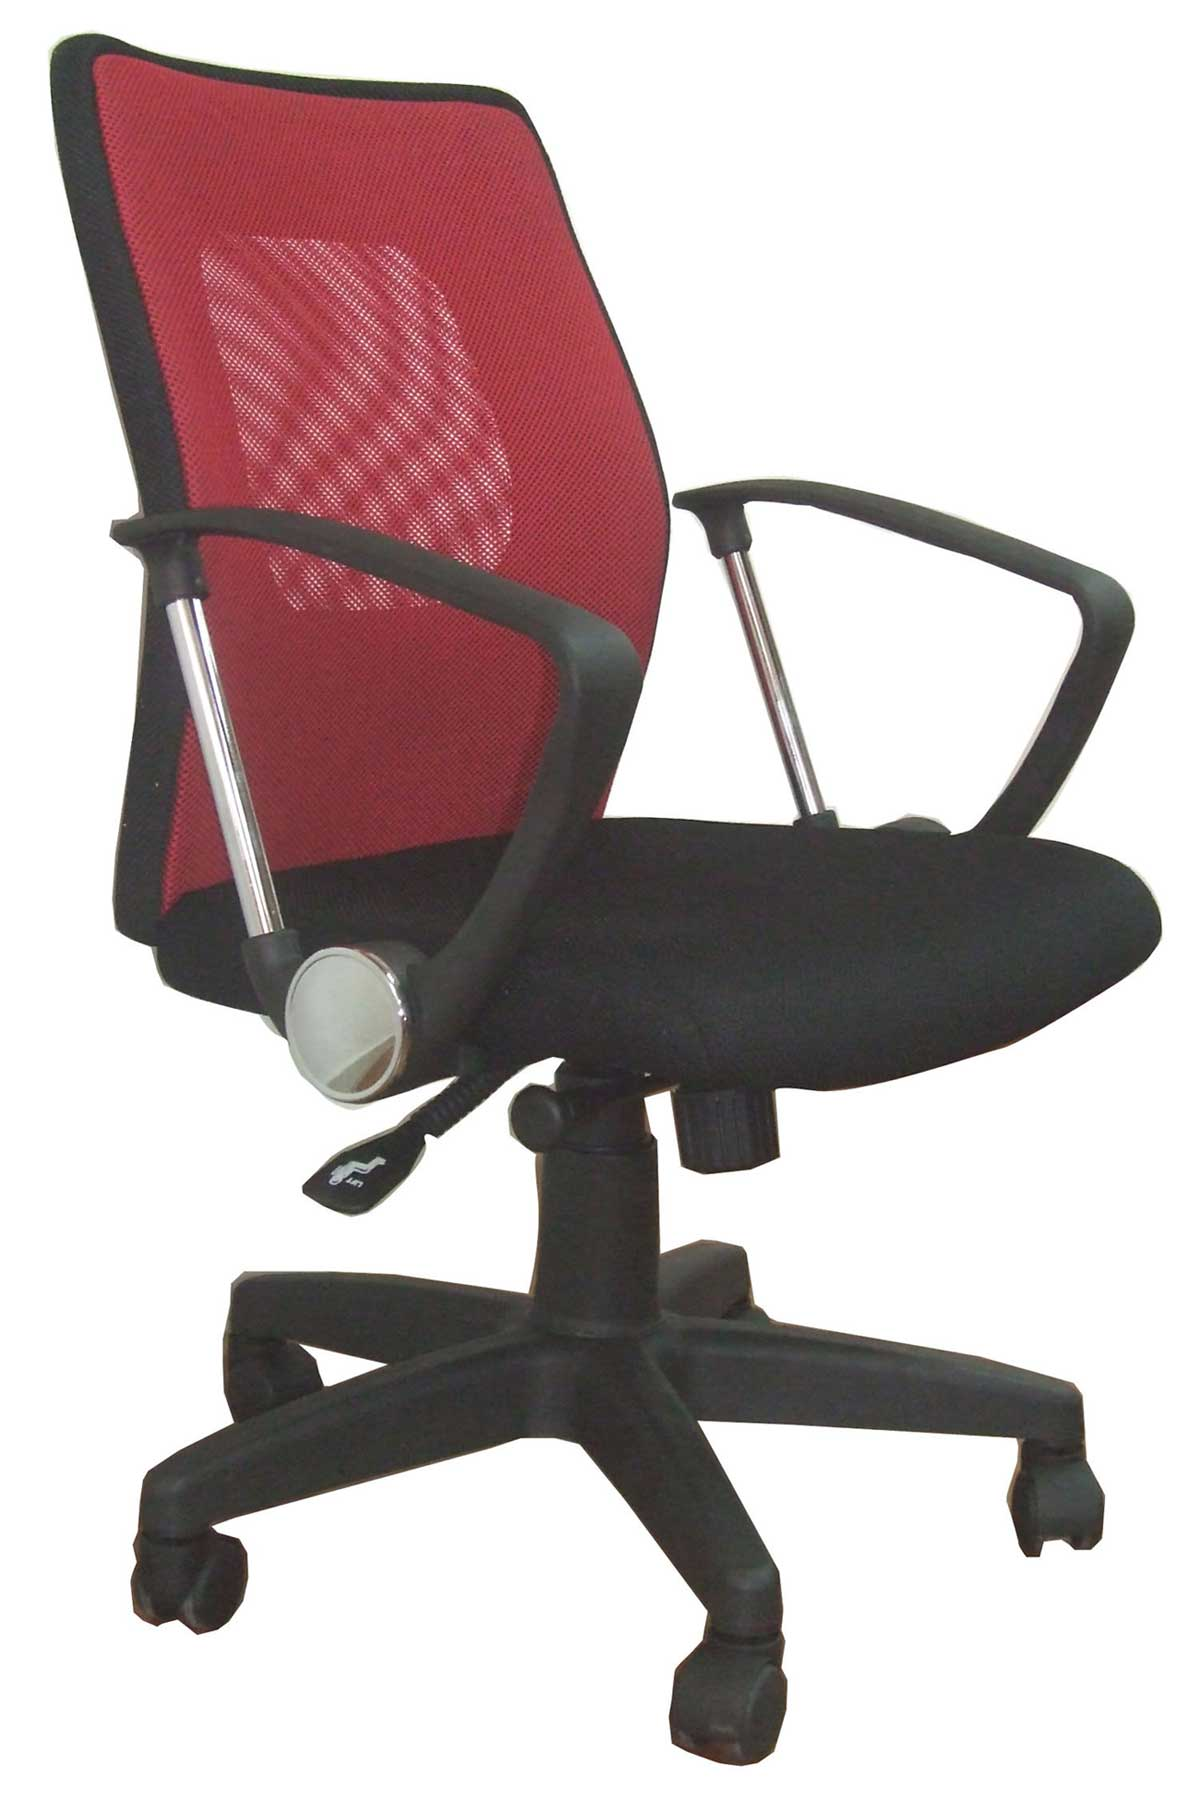 Ergonomic Office Chair Workstation